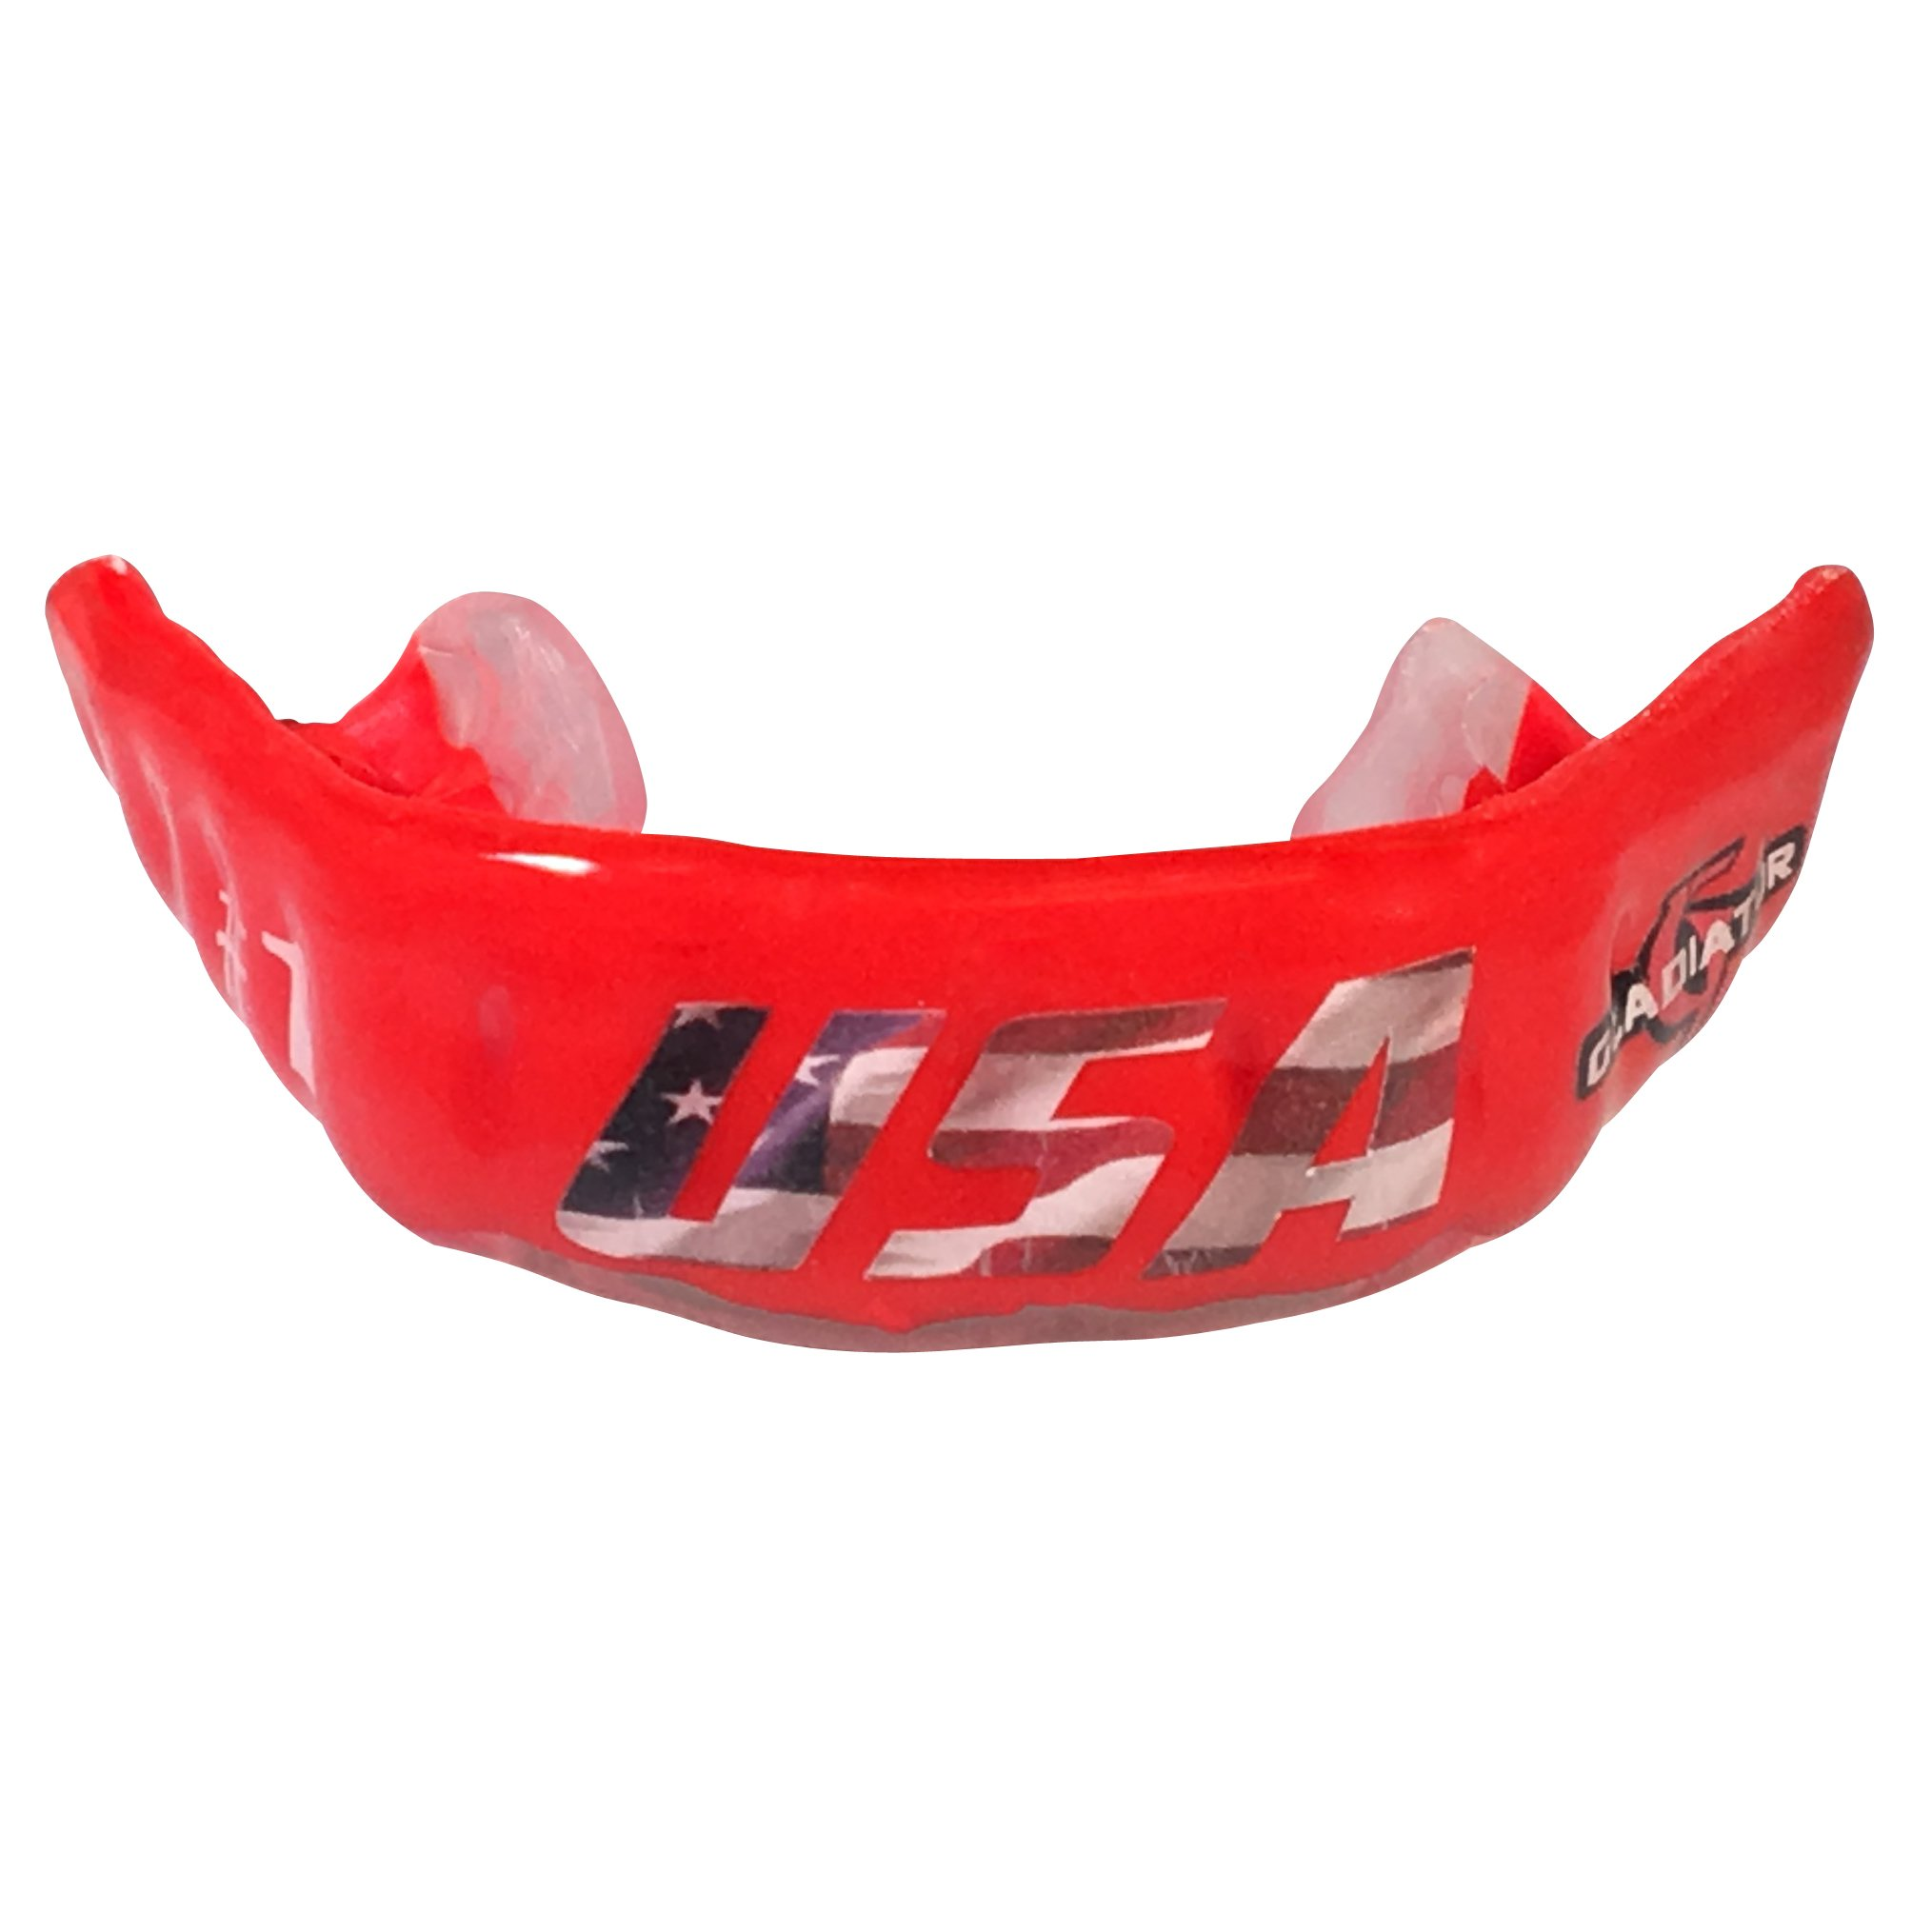 Gladiator Custom Mouthguard Pro Style All Sports Braces, Fully Personalized, Custom fit to Your Mouth